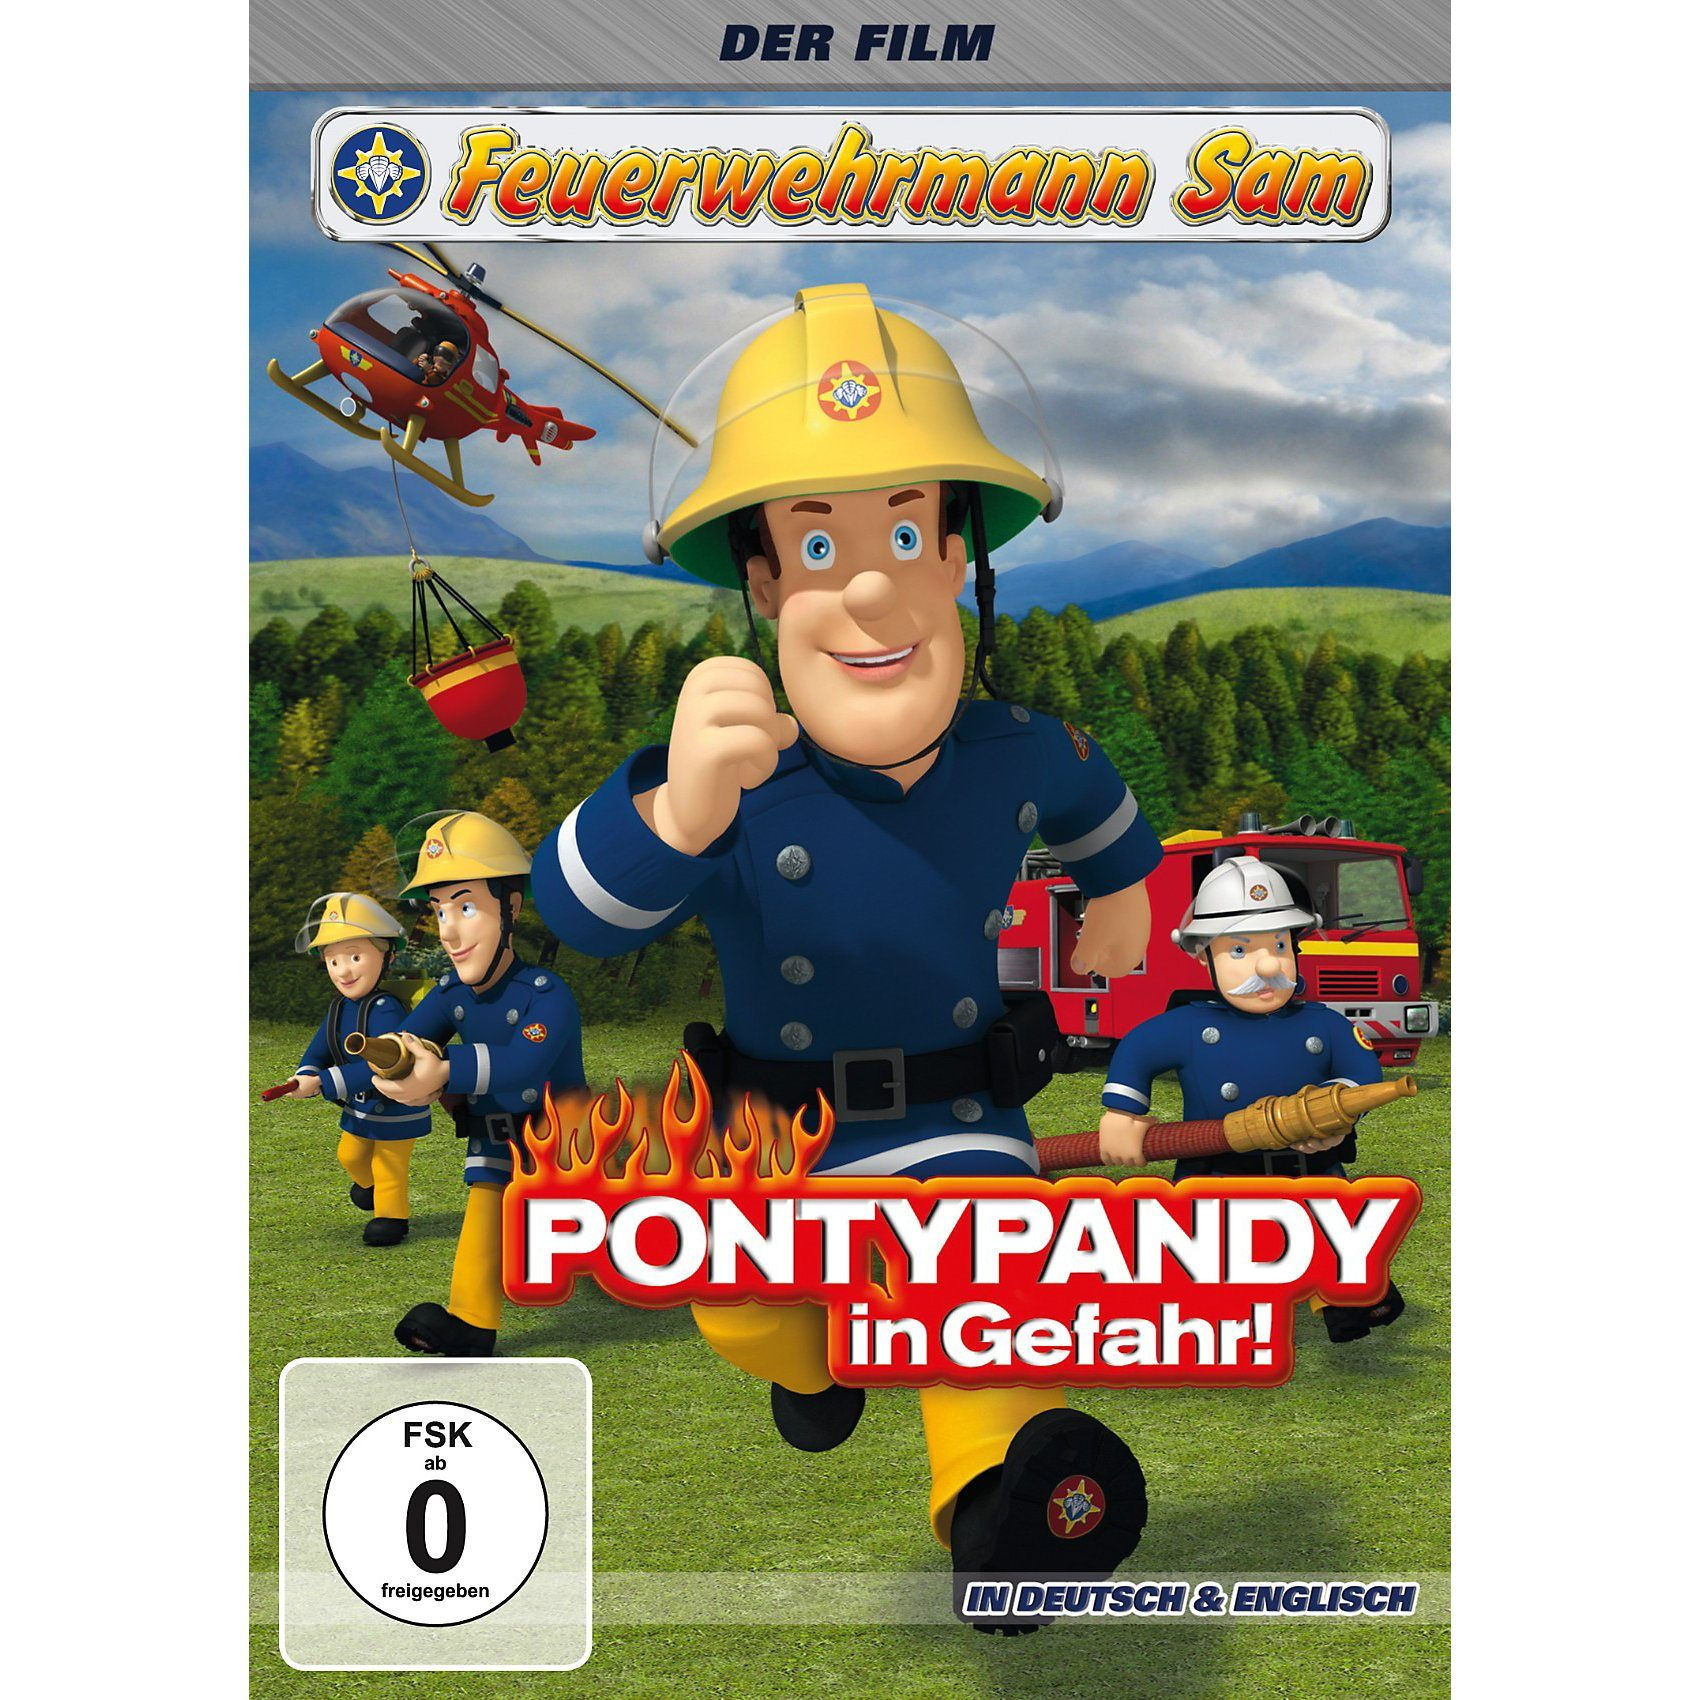 Just Bridge Entertainment DVD Feuerwehrmann Sam - Pontypandy in Gefahr!